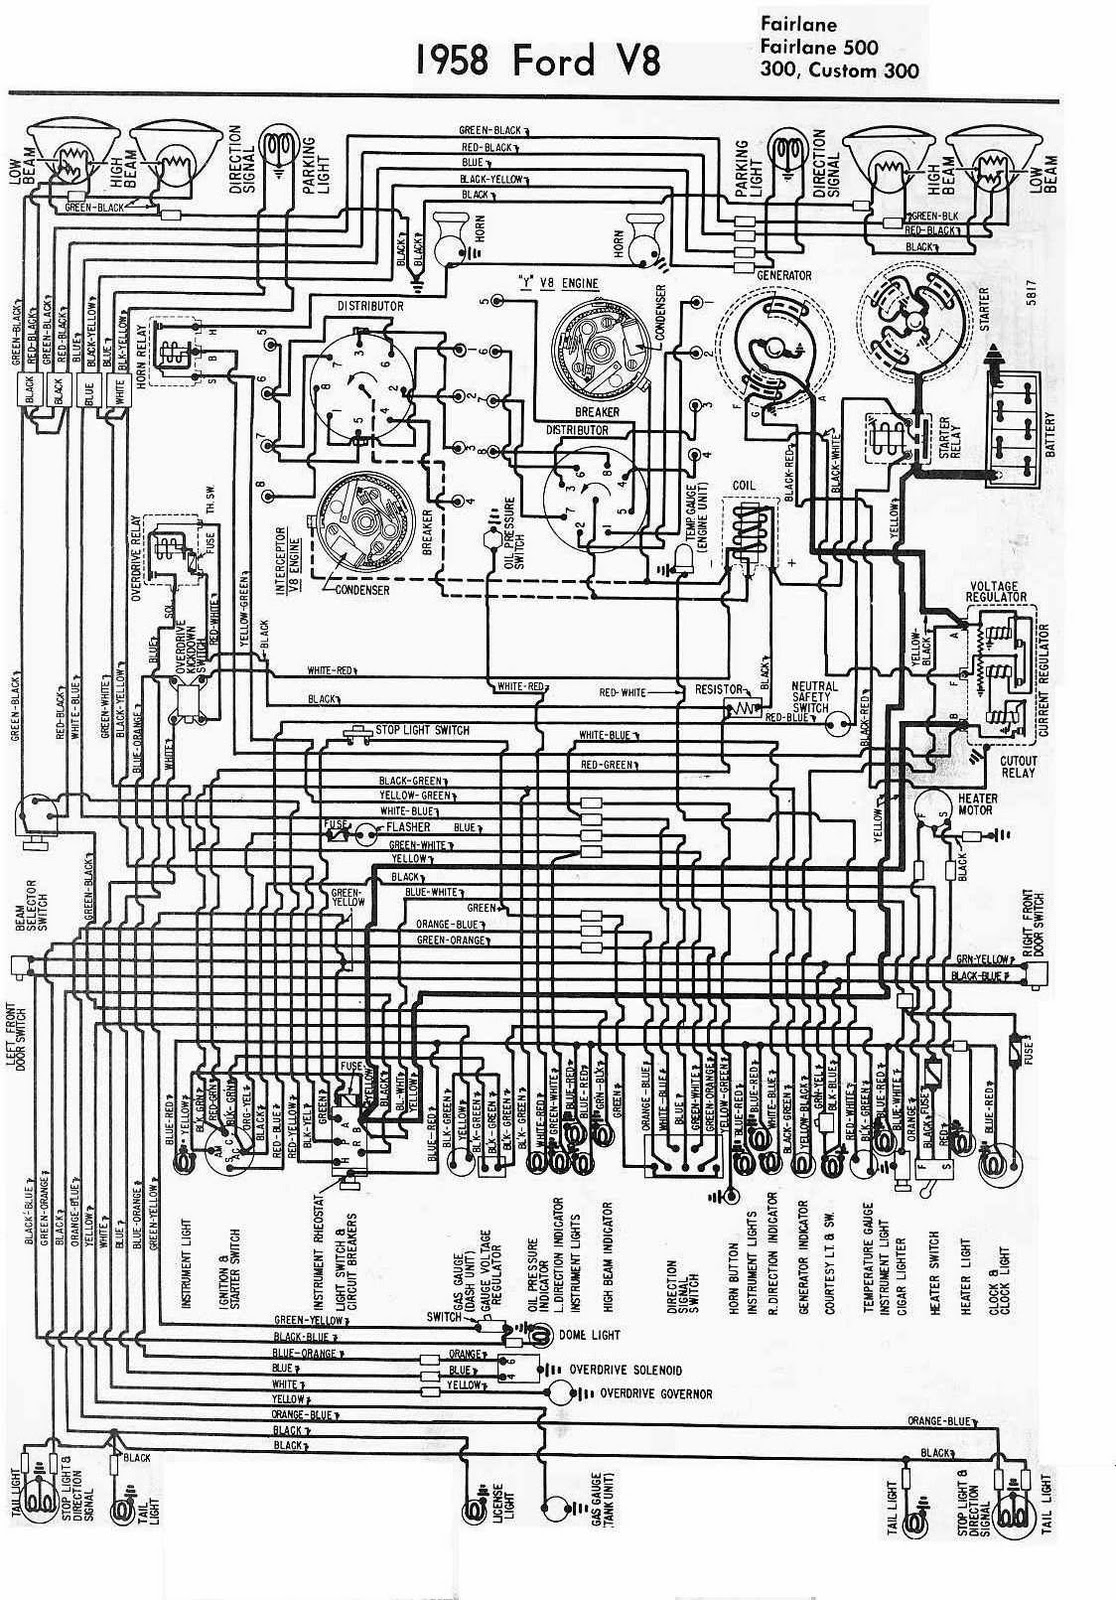 1996 ford pickup truck foldout wiring diagram original f150 f250 f350 super duty